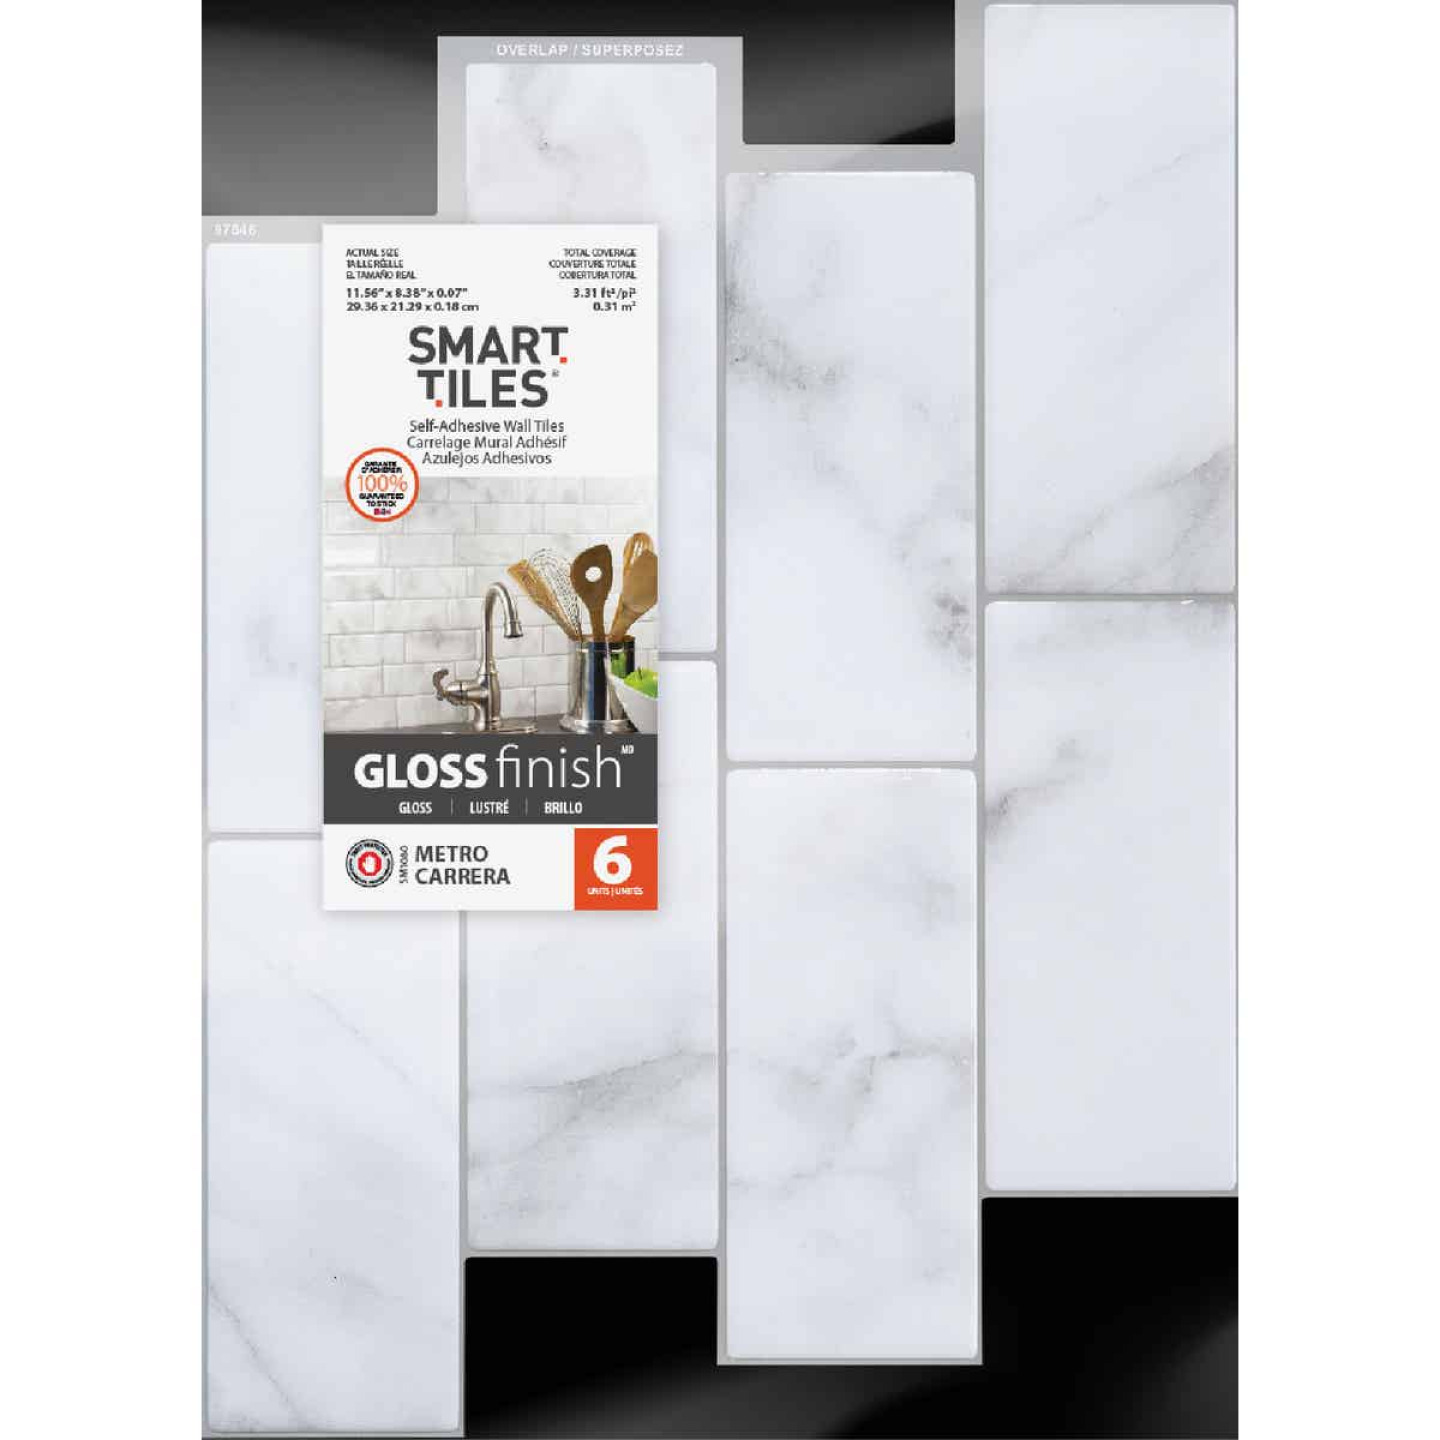 Smart Tiles Approx. 9 In. x 11 In. Glass-Like Vinyl Backsplash Peel & Stick, Metro Carrera Subway Tile (6-Pack) Image 2